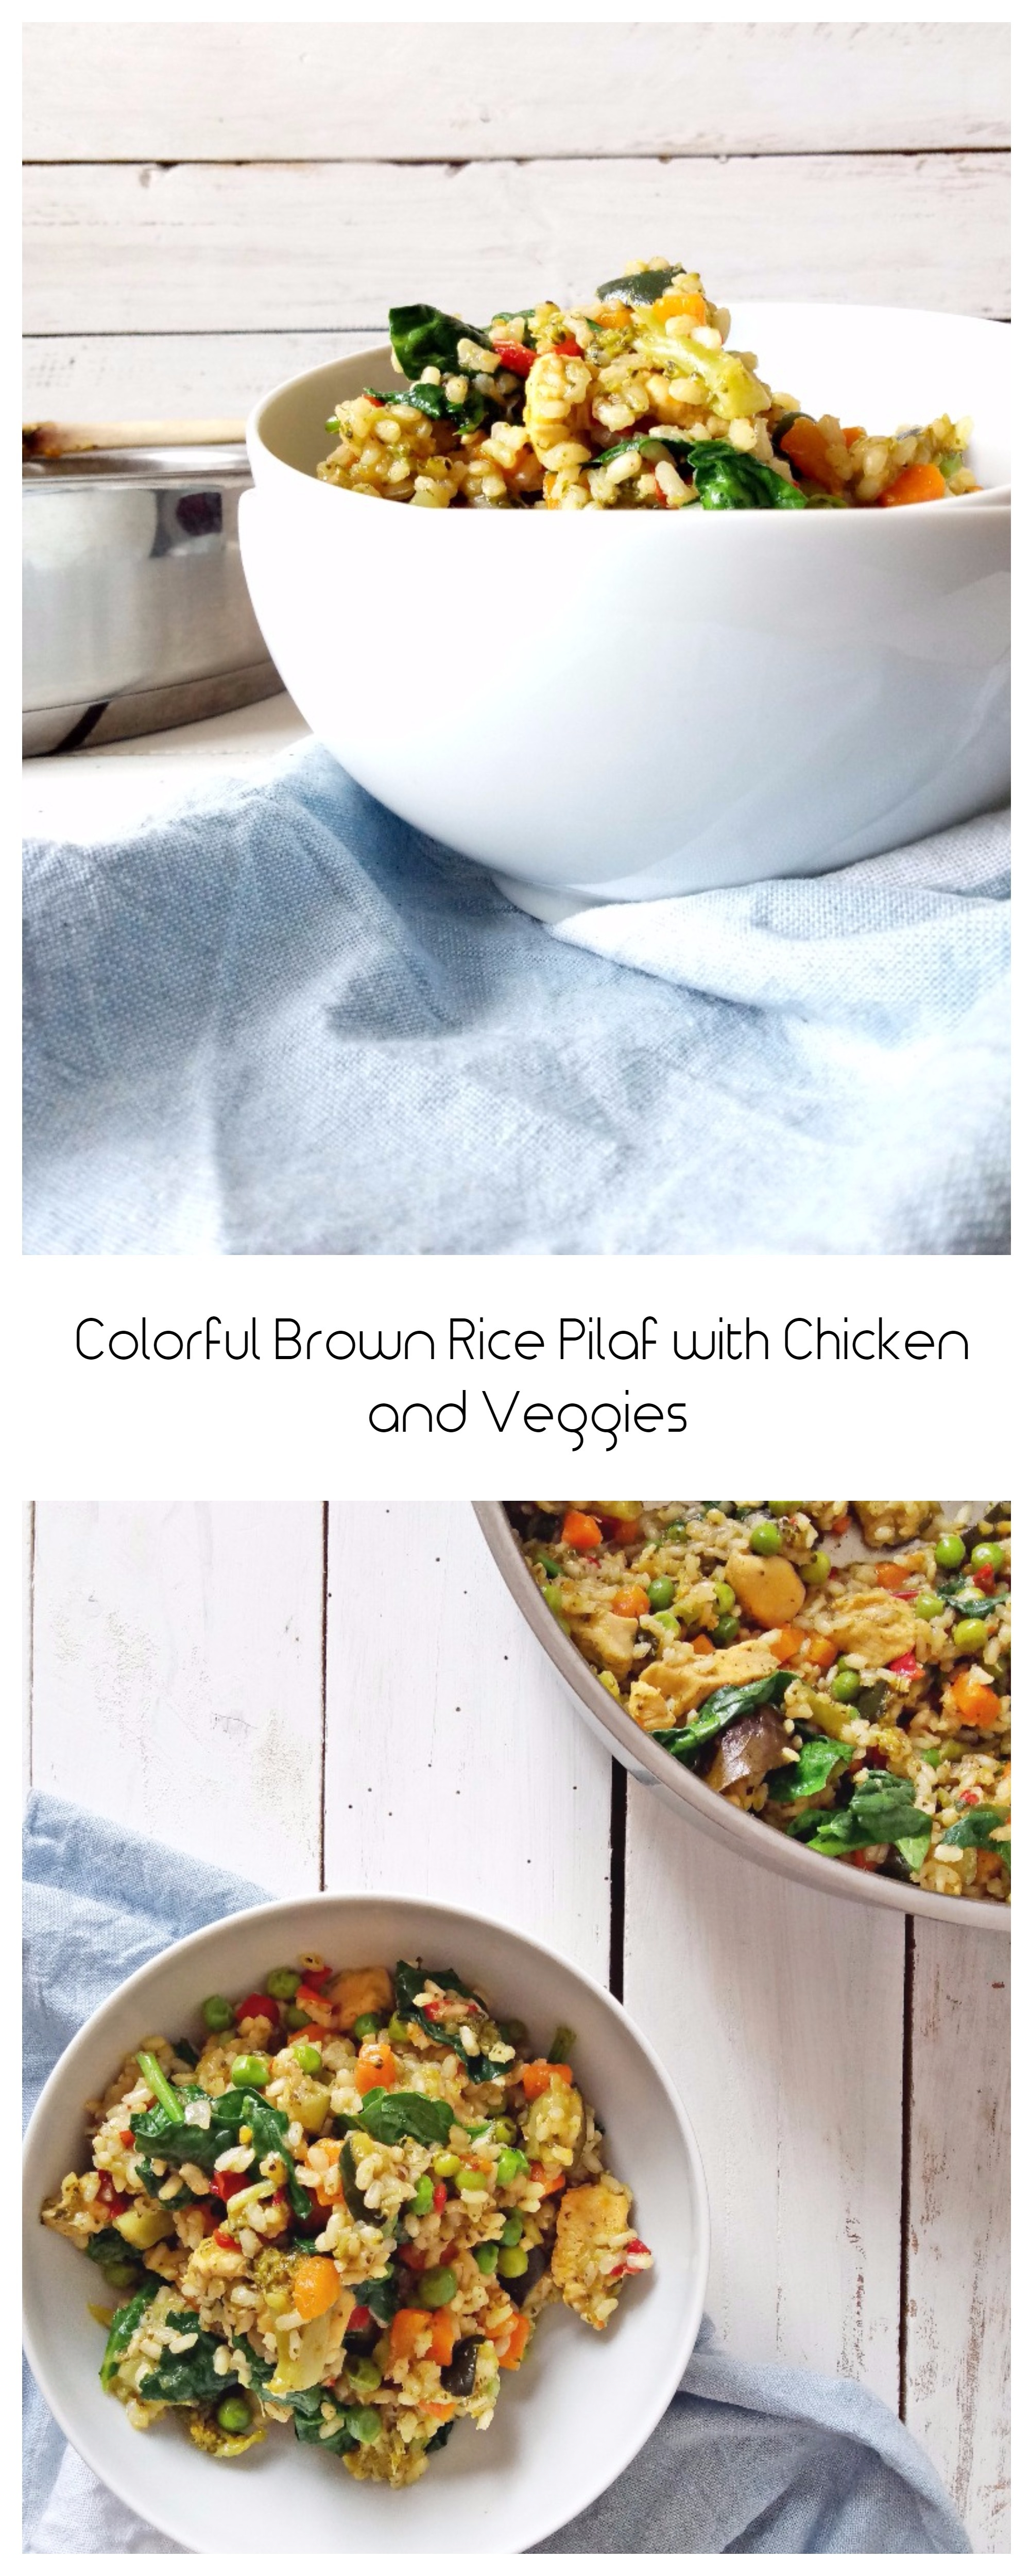 Colorful Brown Rice Pilaf with Chicken and Veggies